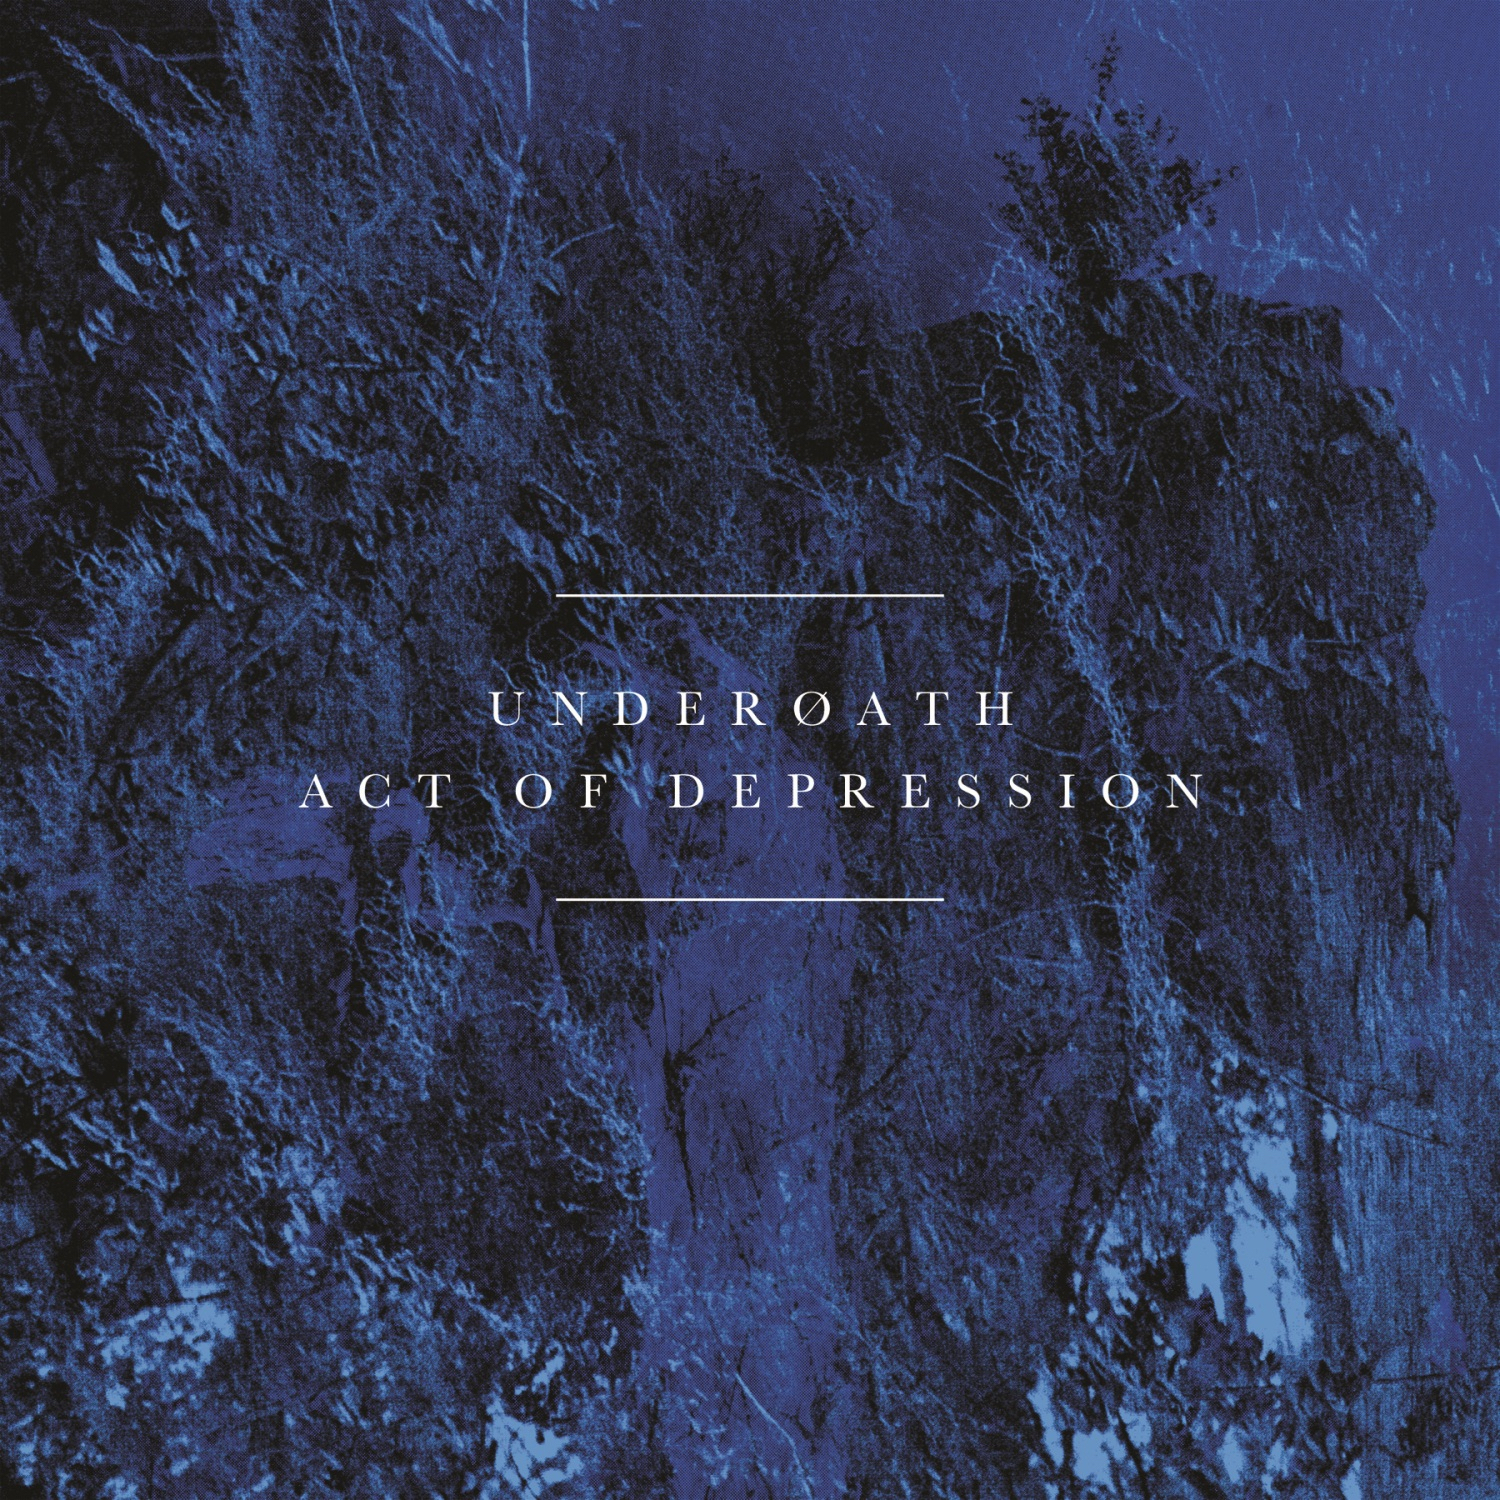 Underoath - Act of Depression (Reissue) (2013)